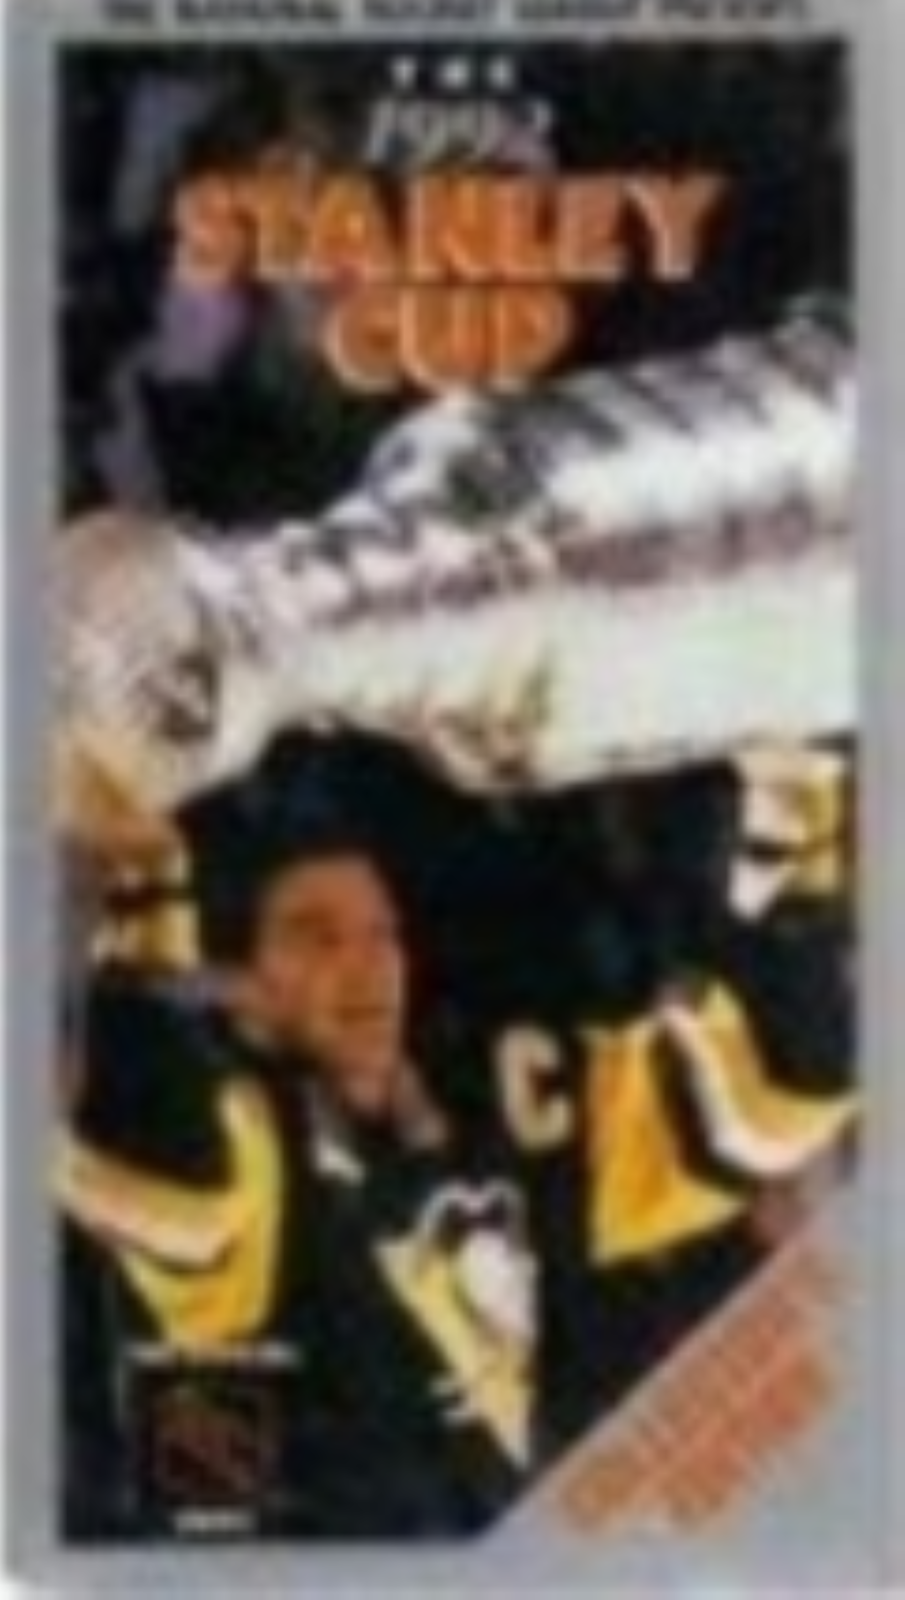 1992 Stanley Cup Pittsburgh / Chicago Vhs